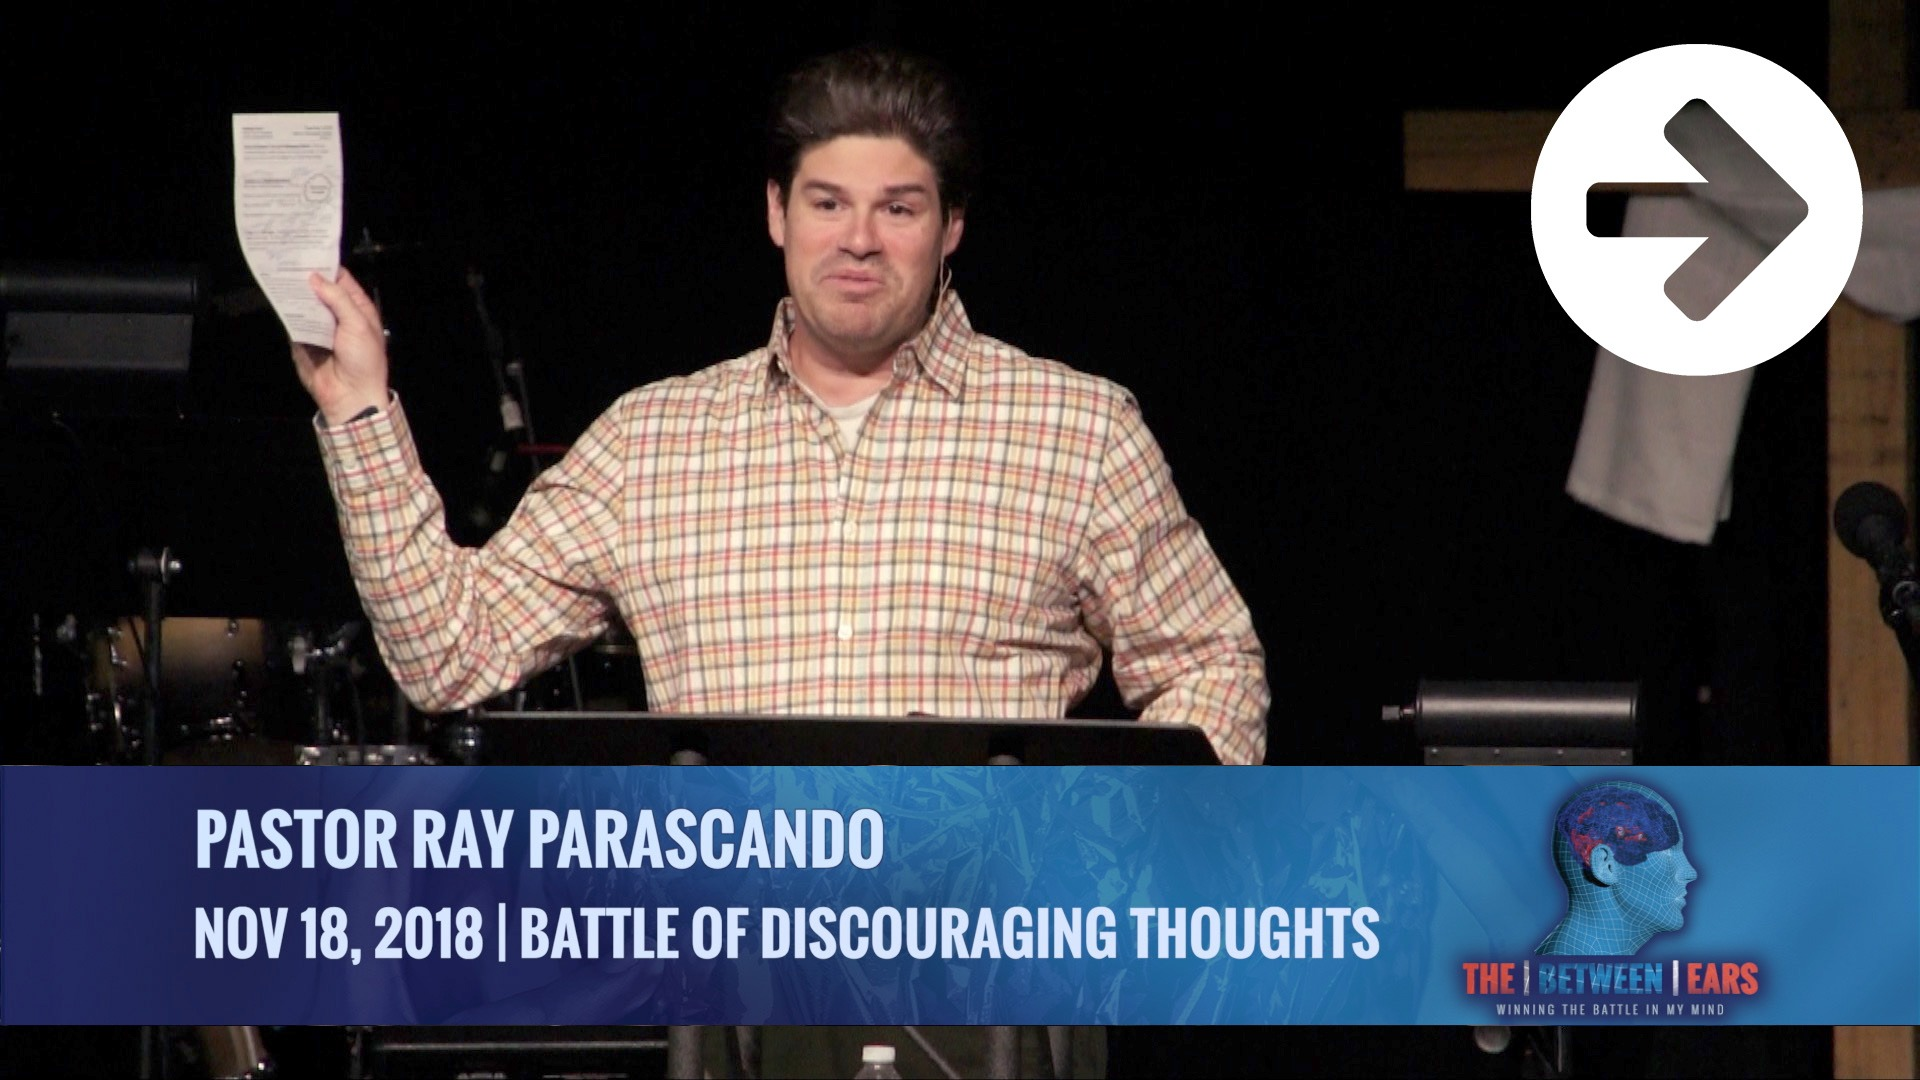 Battle Of Discouraging Thoughts Image